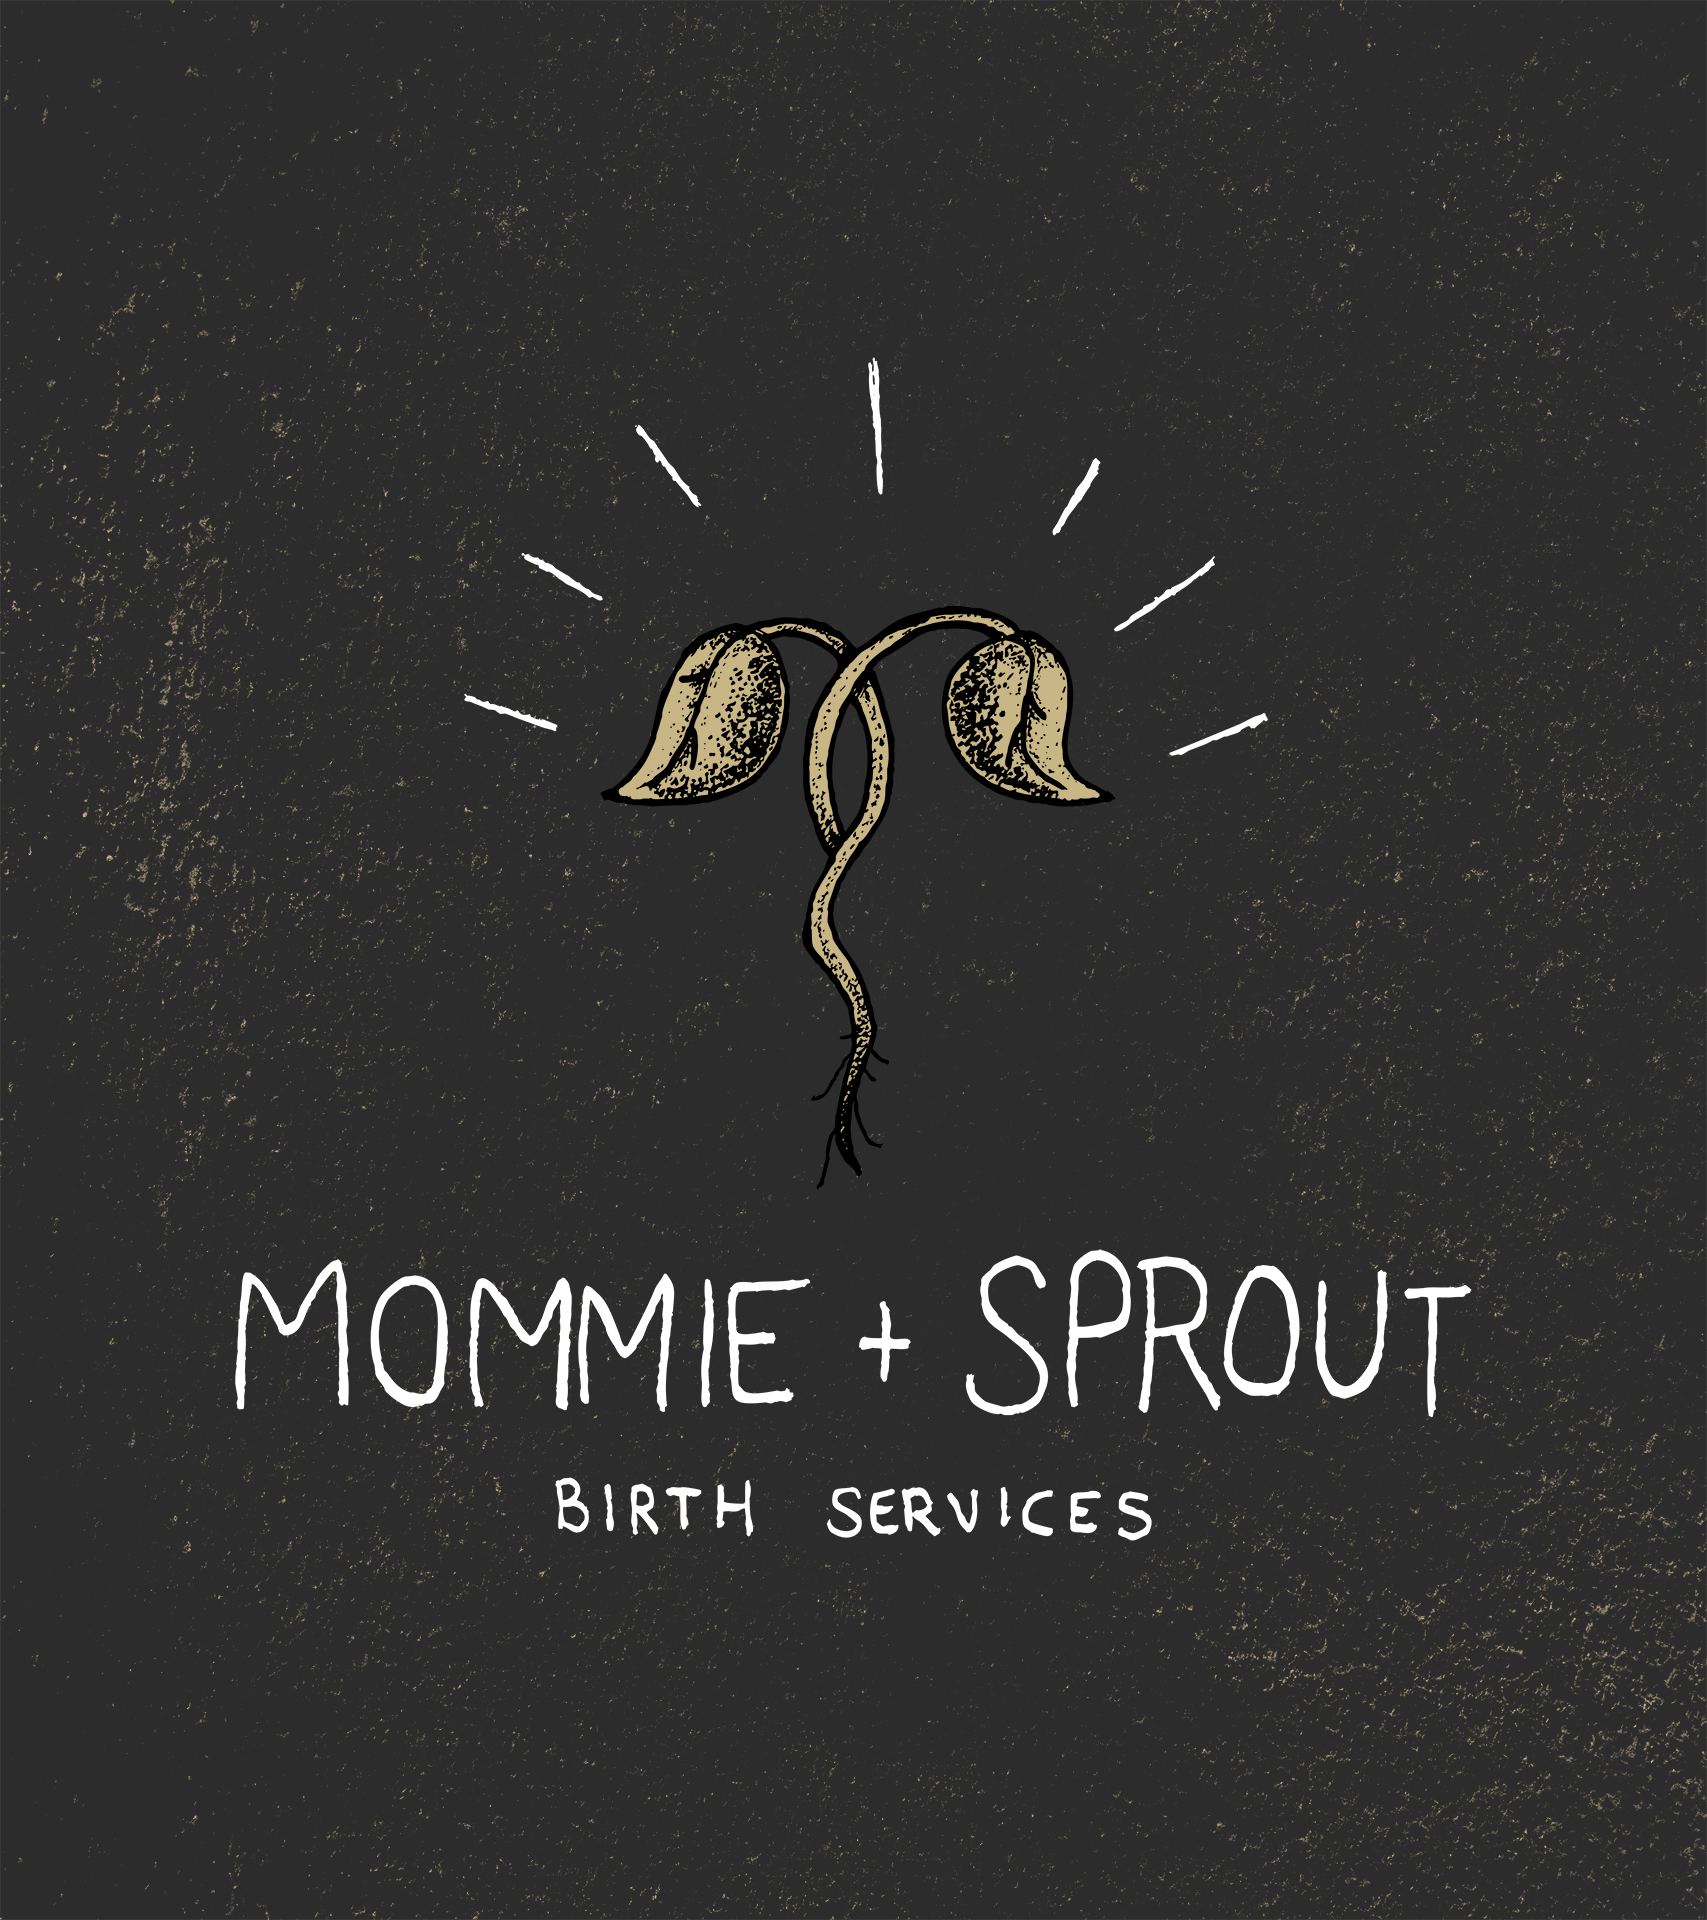 mommie + sprout colorized.jpg